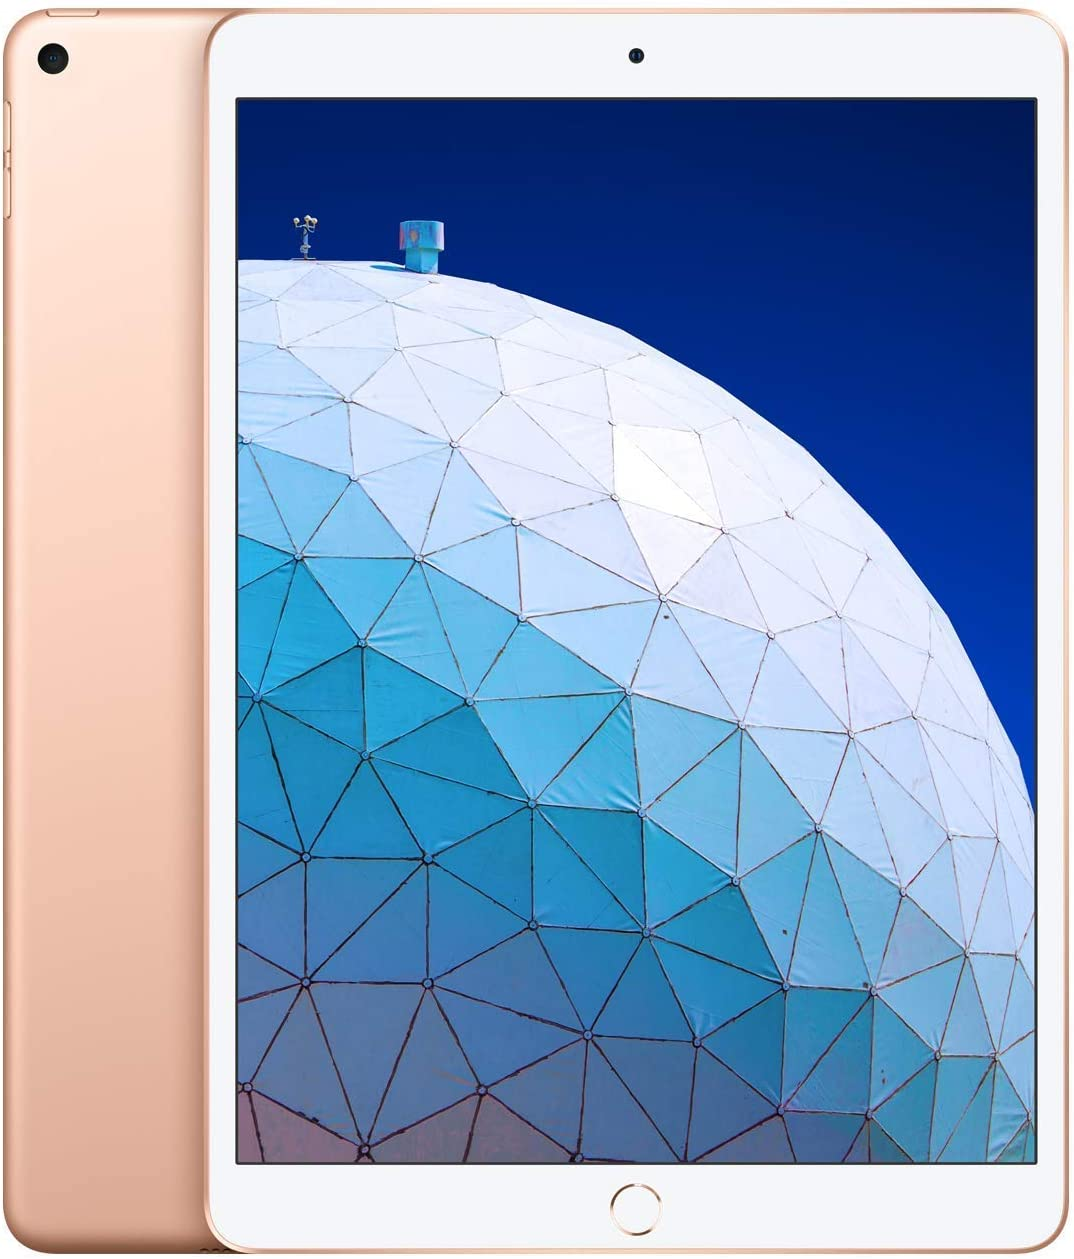 Apple iPad Air (10.5-inch, Wi-Fi, 256GB) - Gold (Renewed)